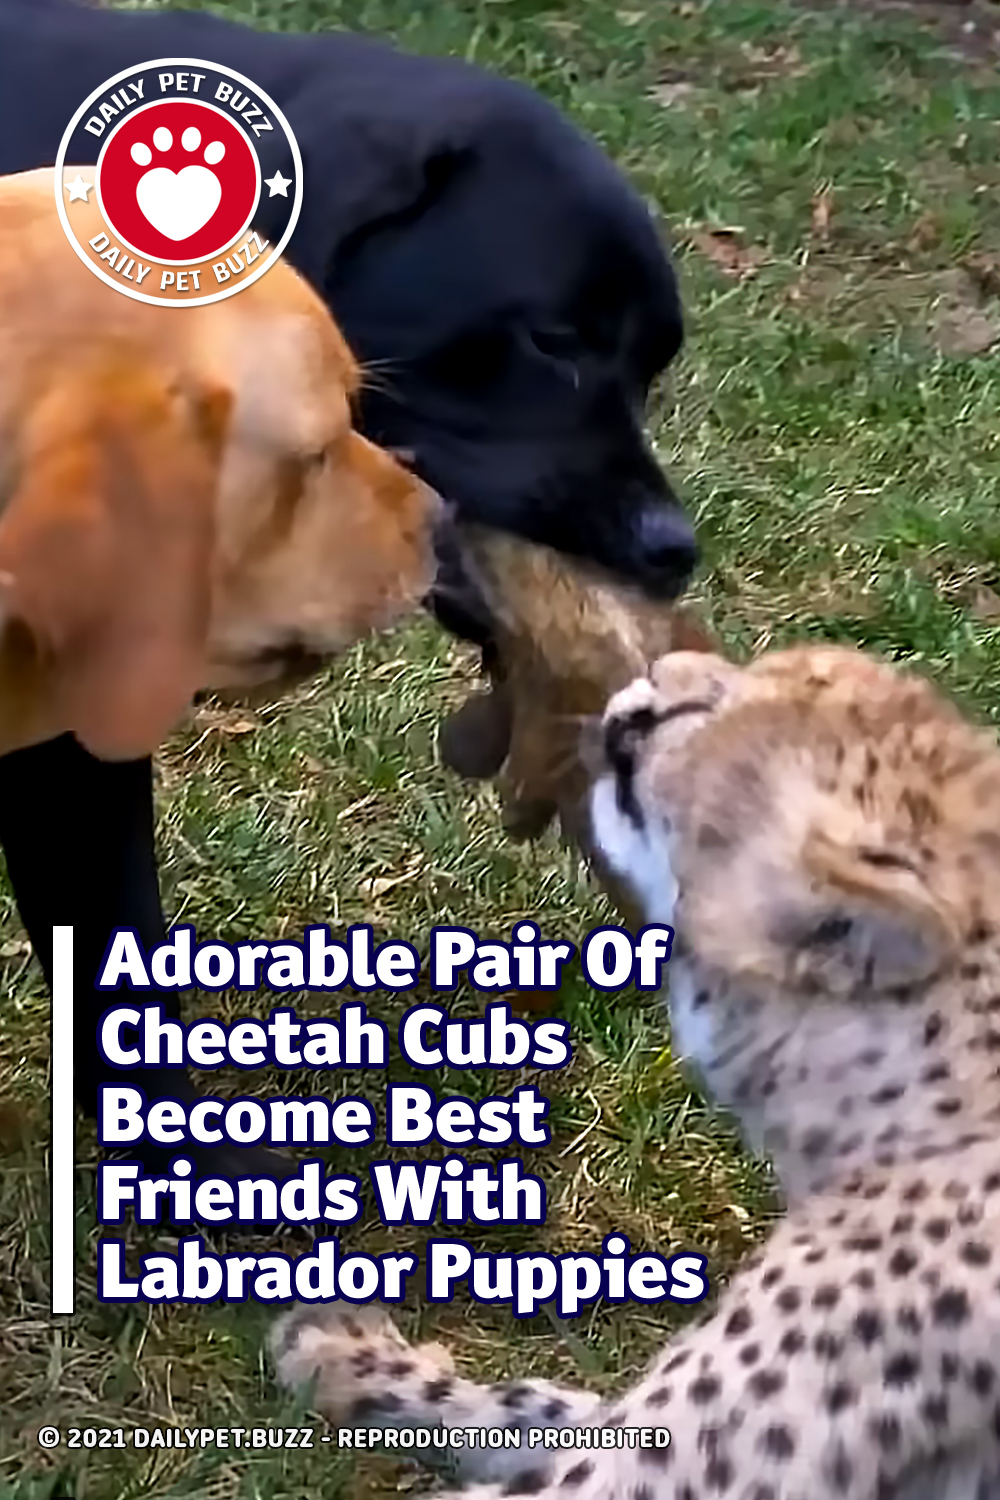 Adorable Pair Of Cheetah Cubs Become Best Friends With Labrador Puppies